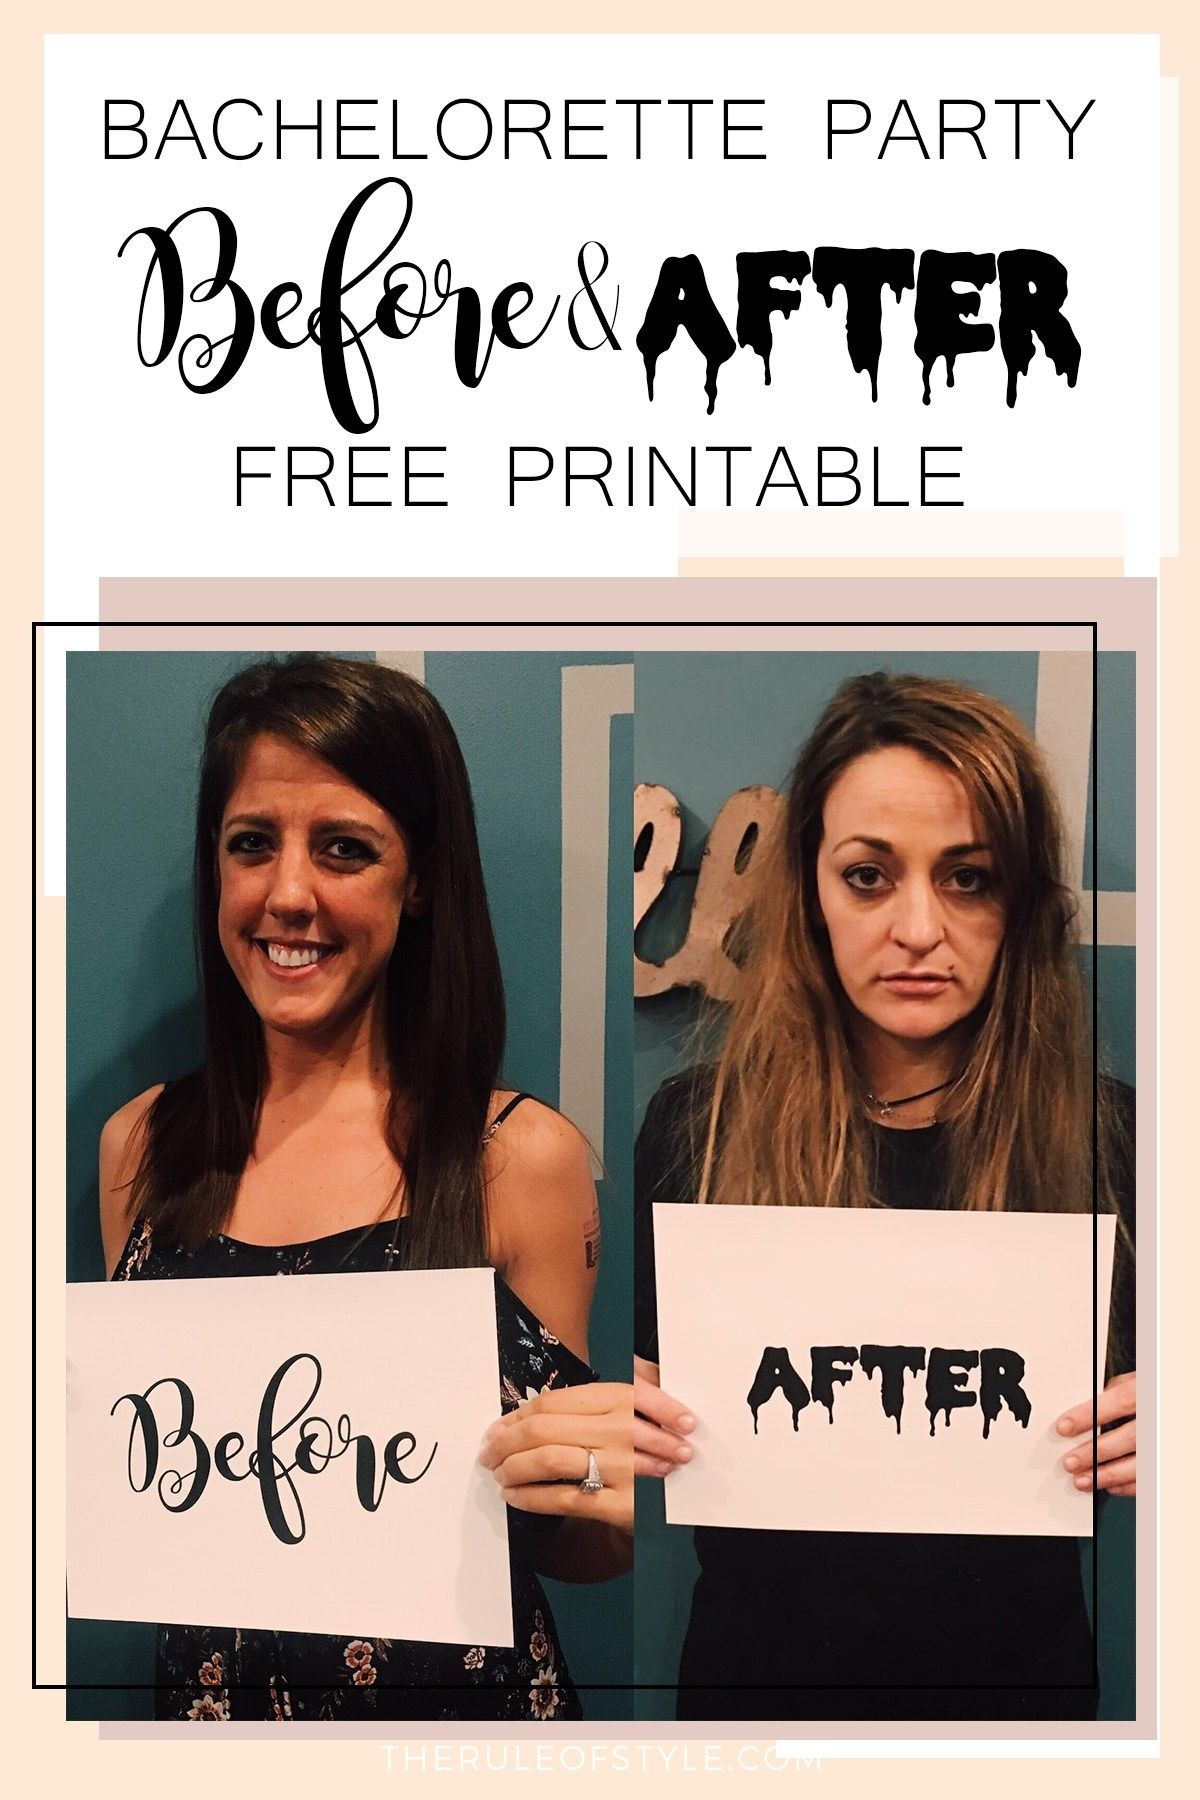 Free Bachelorette Party Printable - Before And After Signs - Free Printable Bachelorette Signs